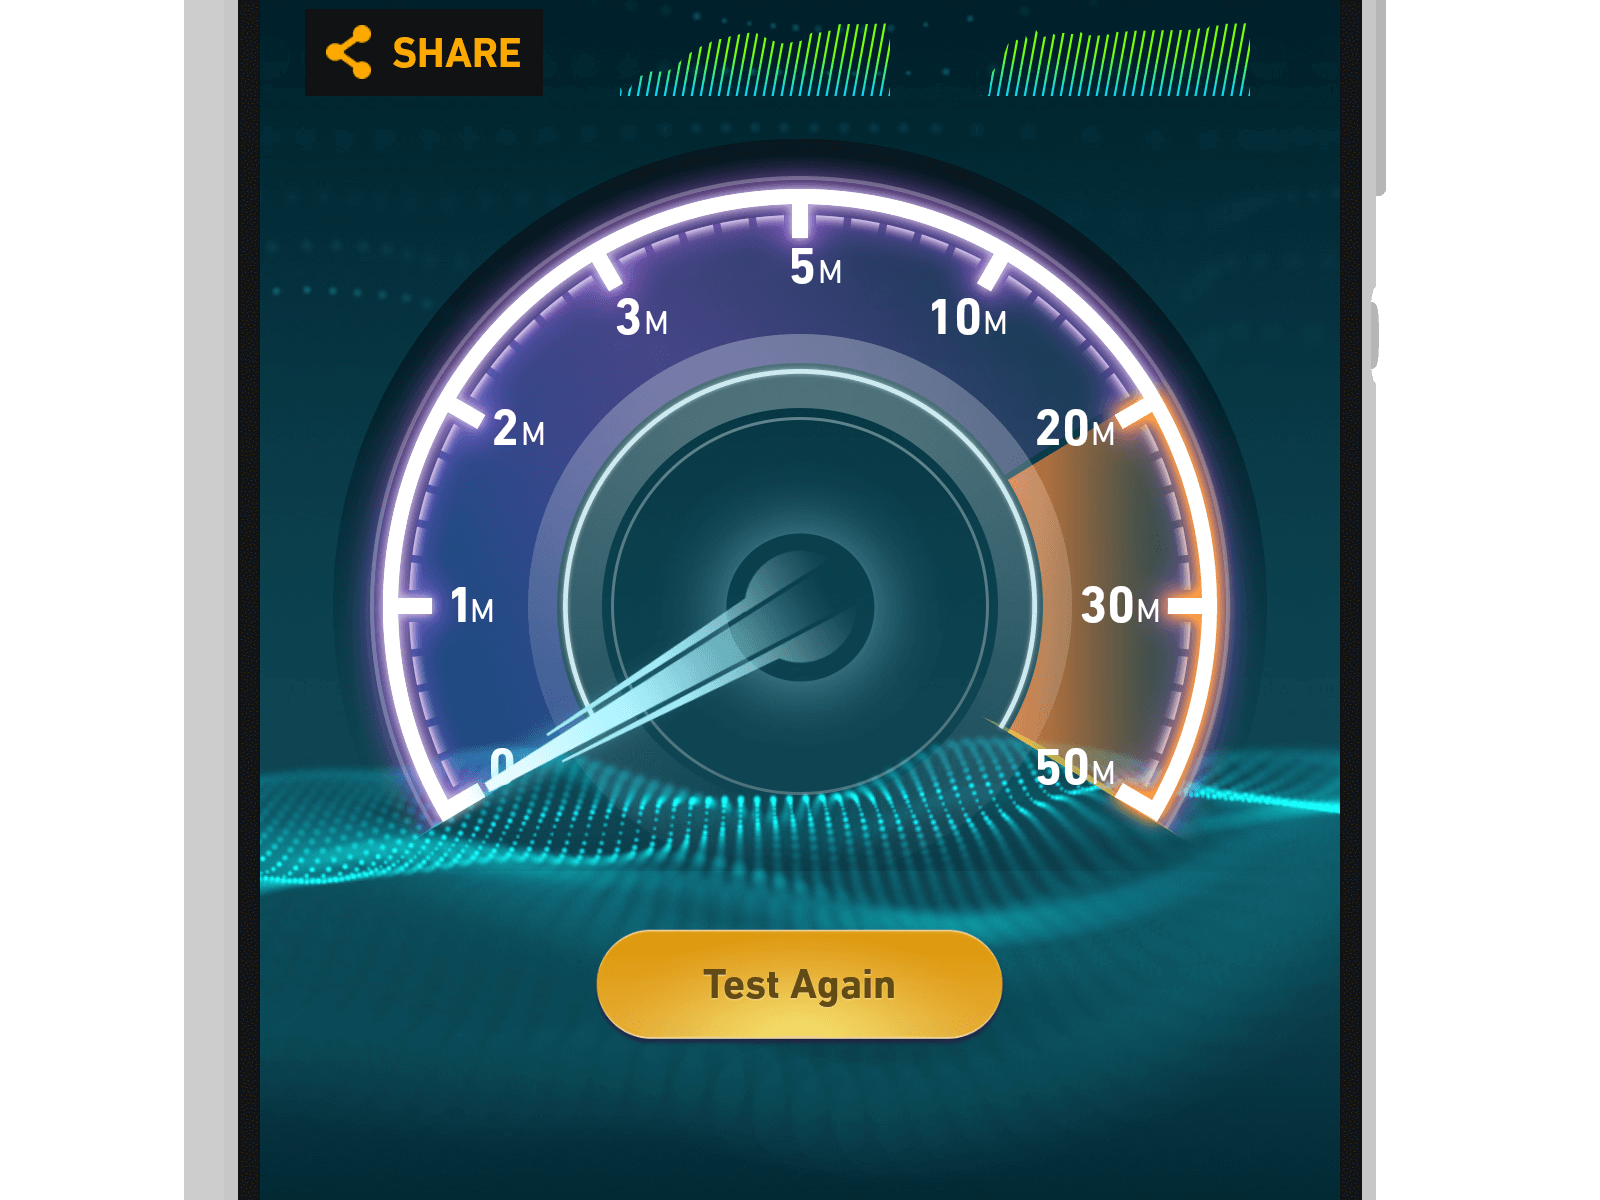 Ookla Speedtest for Android